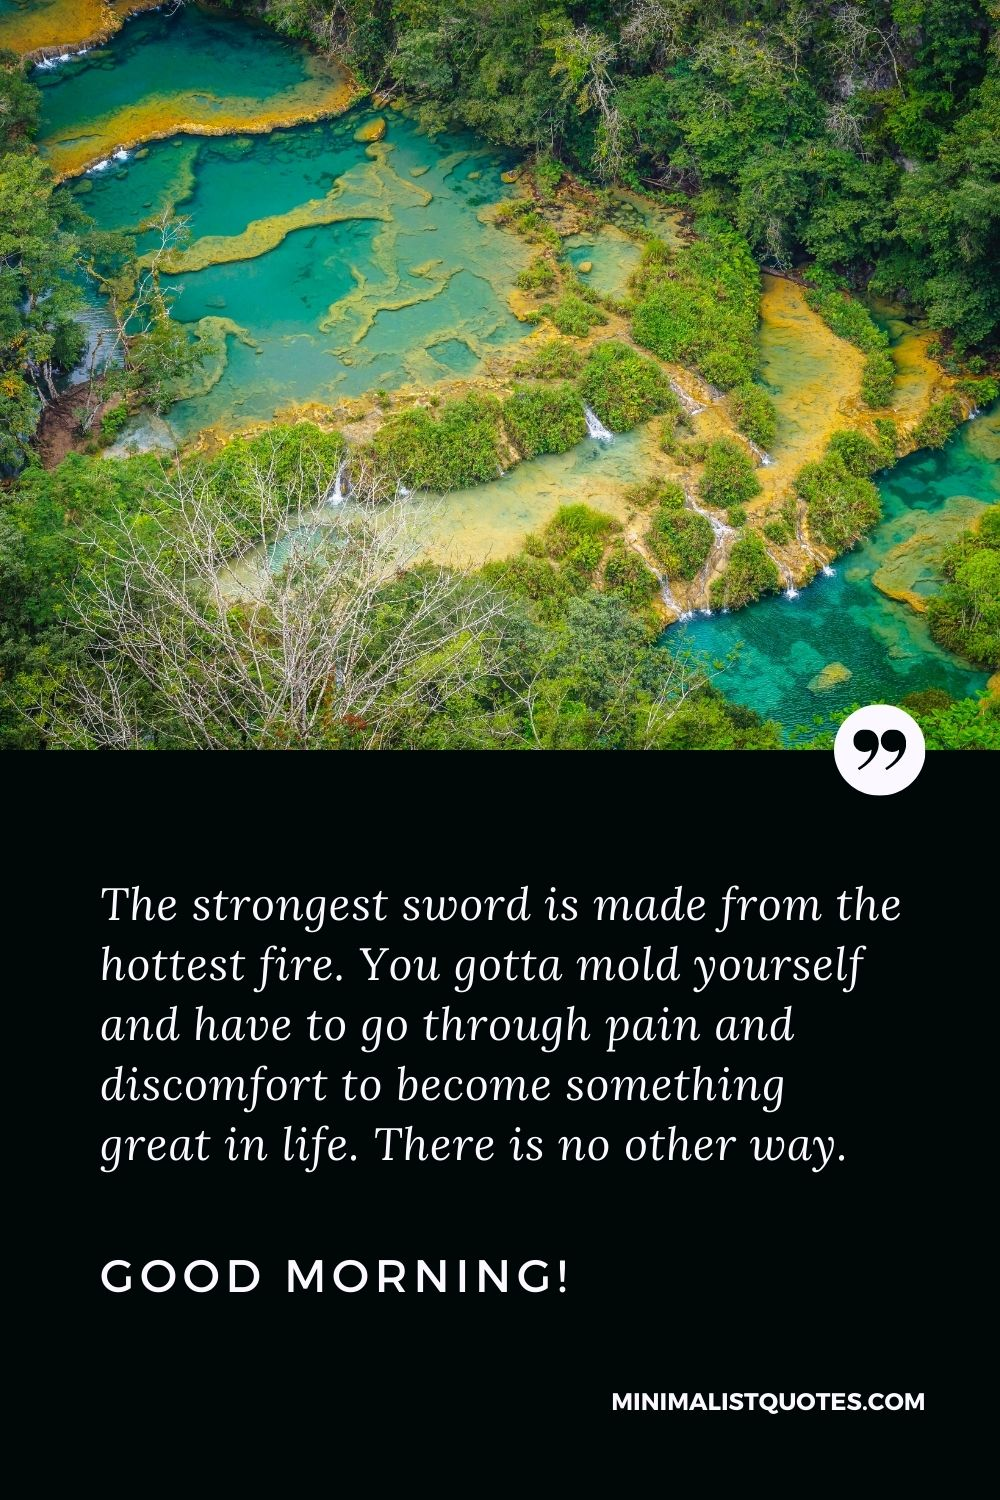 Motivational Good Morning Quote: The strongest sword is made from the hottest fire. You gotta mold yourself and have to go through pain and discomfort to become something great in life. There is no other way. Good Morning!